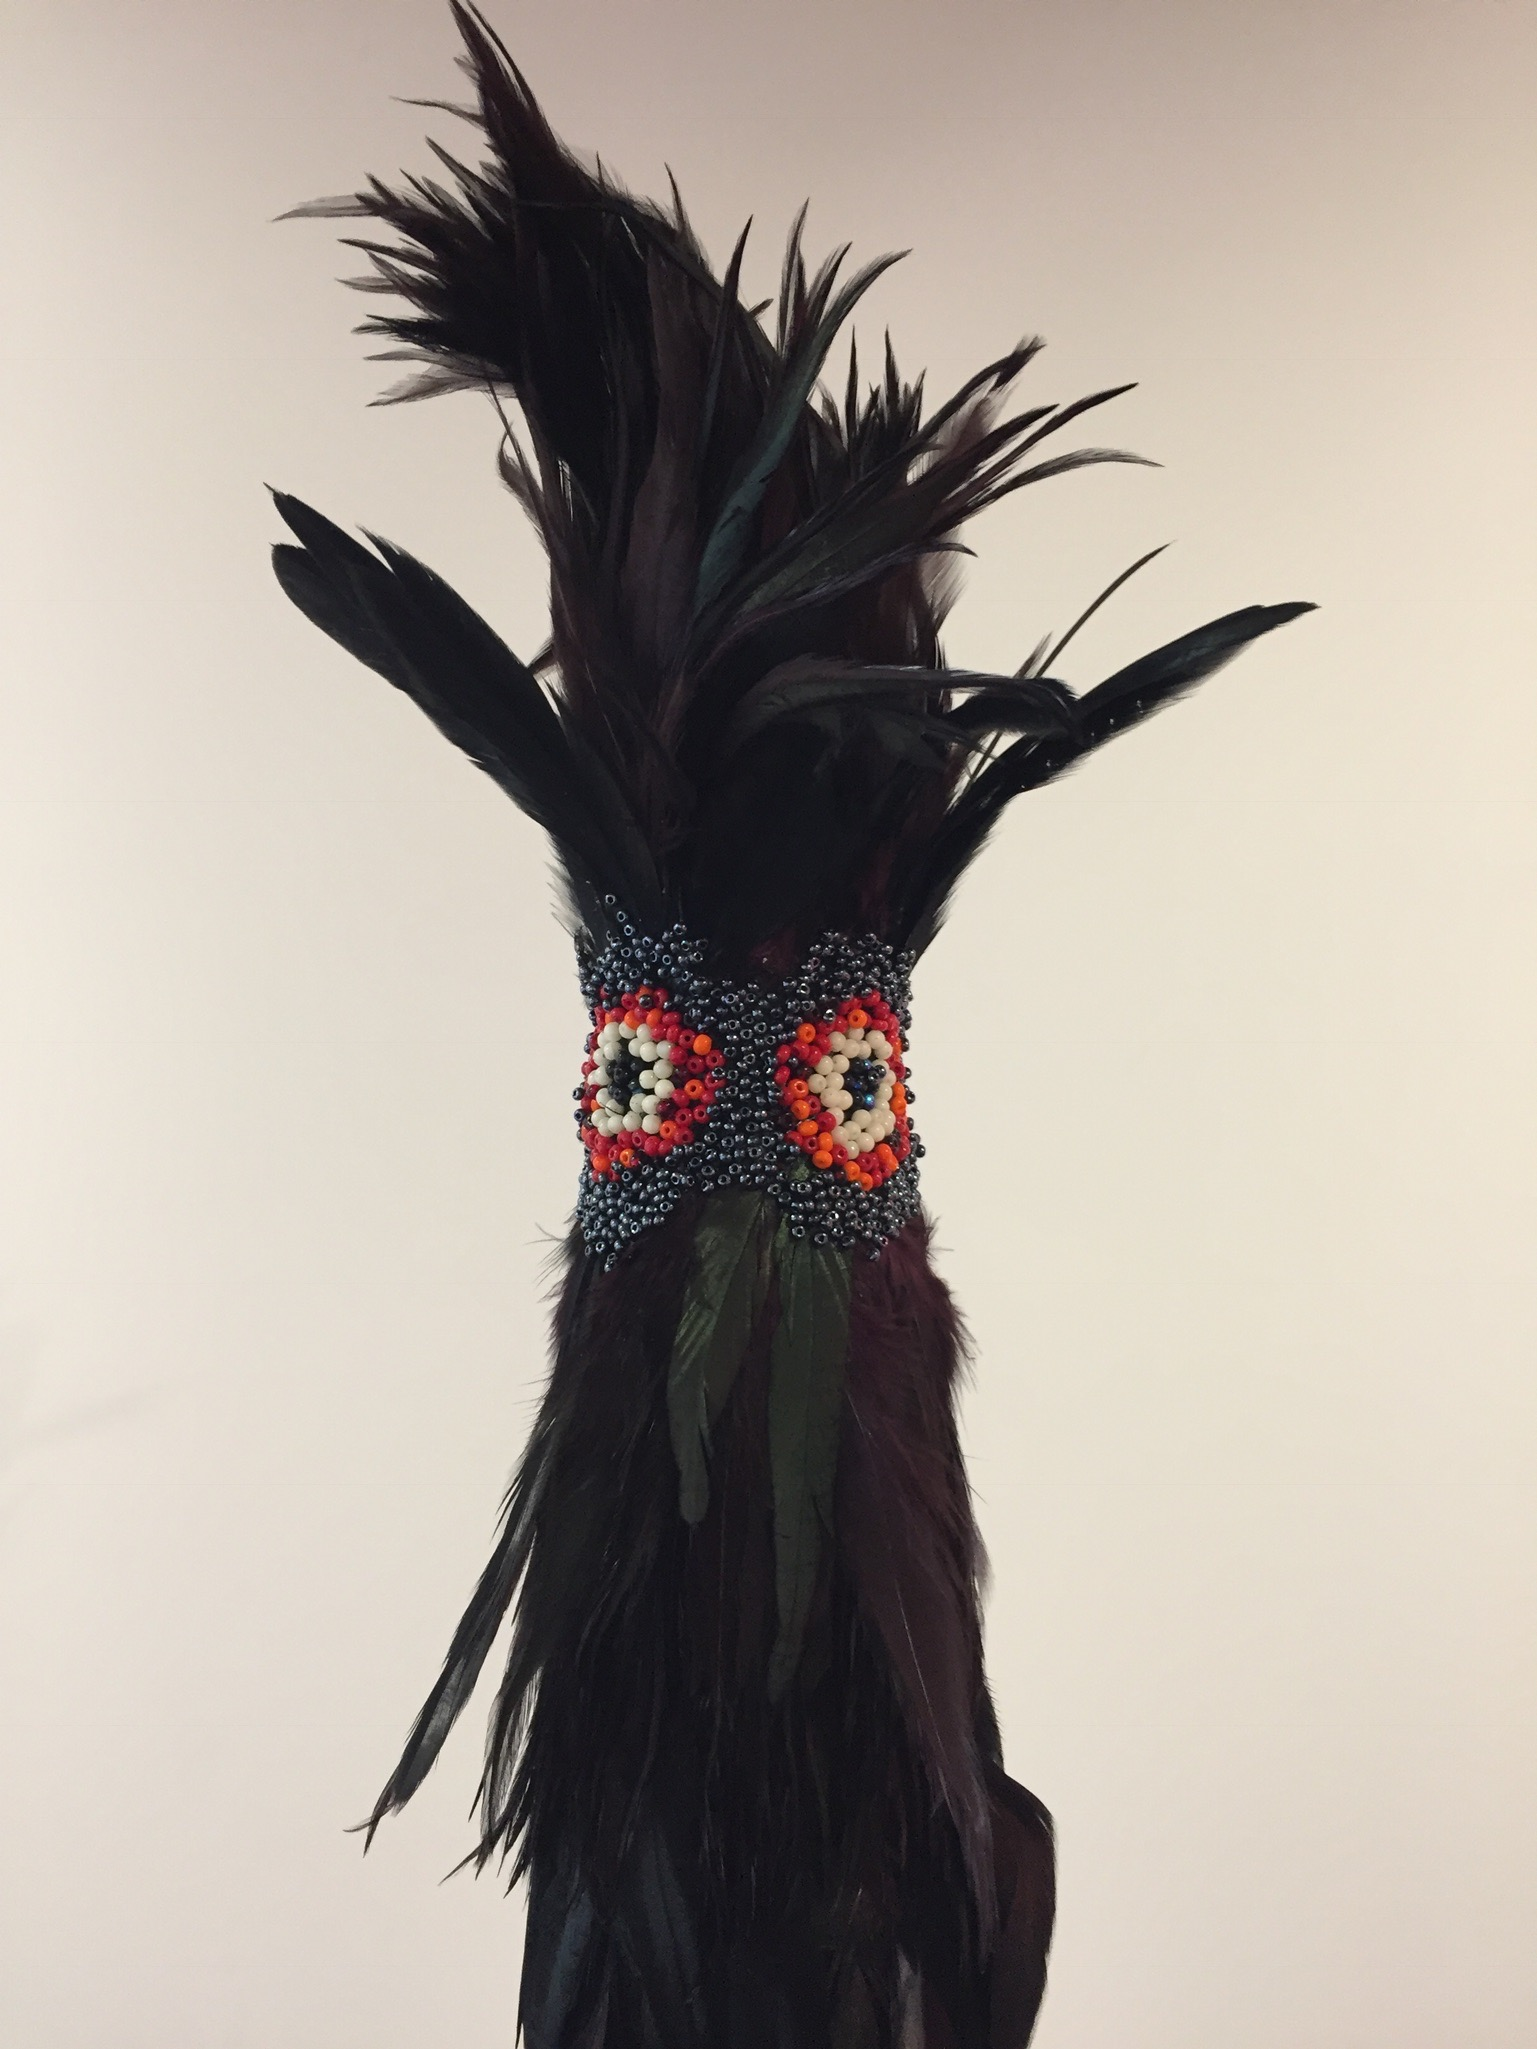 Gallus Gallus (detail), 2017, cock feathers and glass beads, variable dimensions